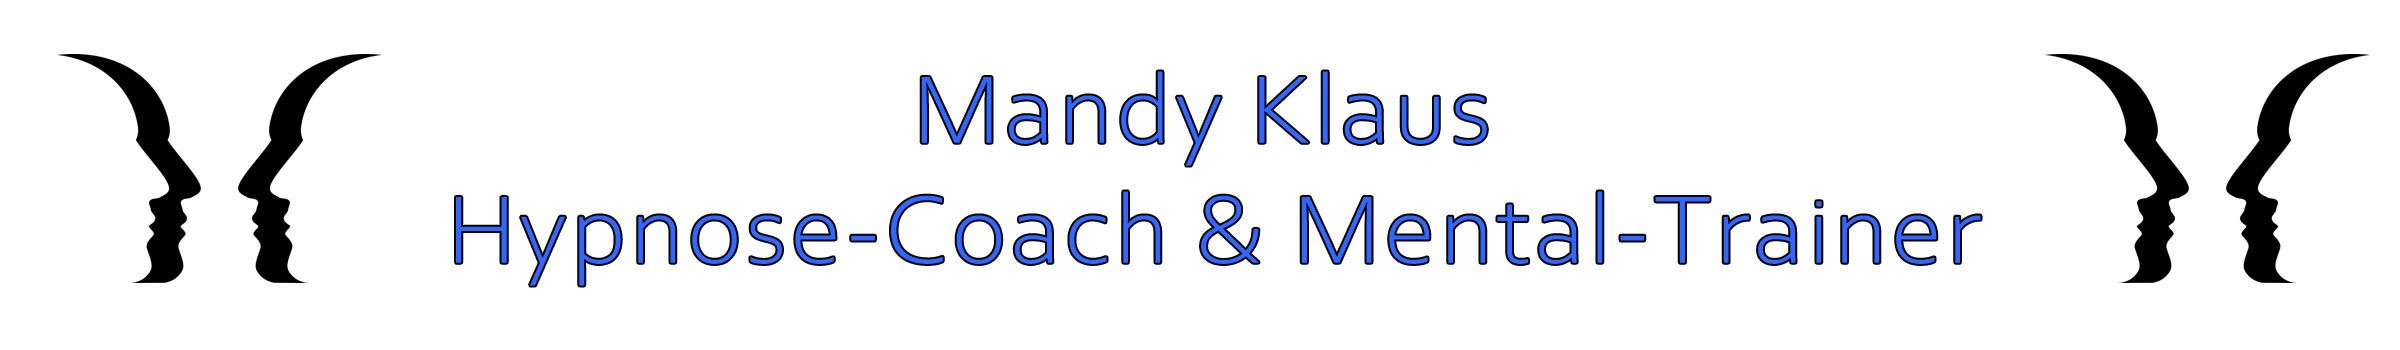 Mandy Klaus, Hypnose-Coach und Mental-Trainer